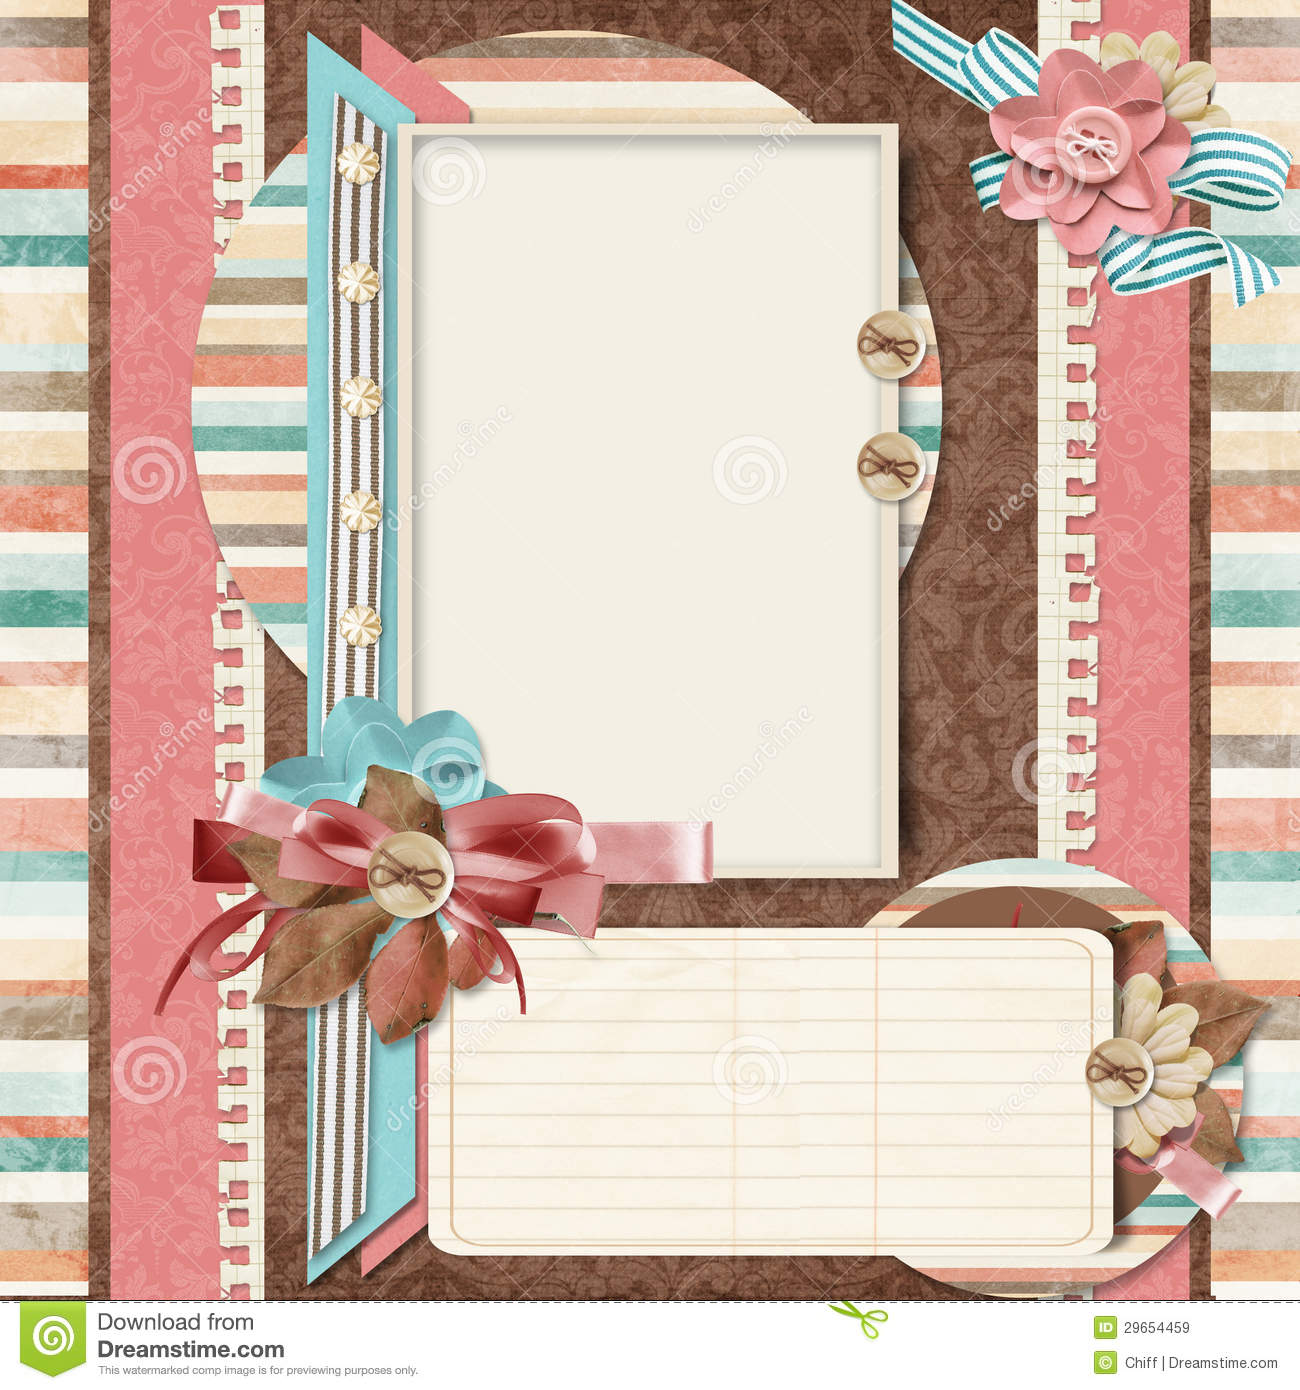 Digital scrapbooking kits free all about scrapbooking ideas - 16 Design Digital Scrapbook Templates Images Digital Scrapbook Free Scrapbook Page Templates Salsuba Choice Image